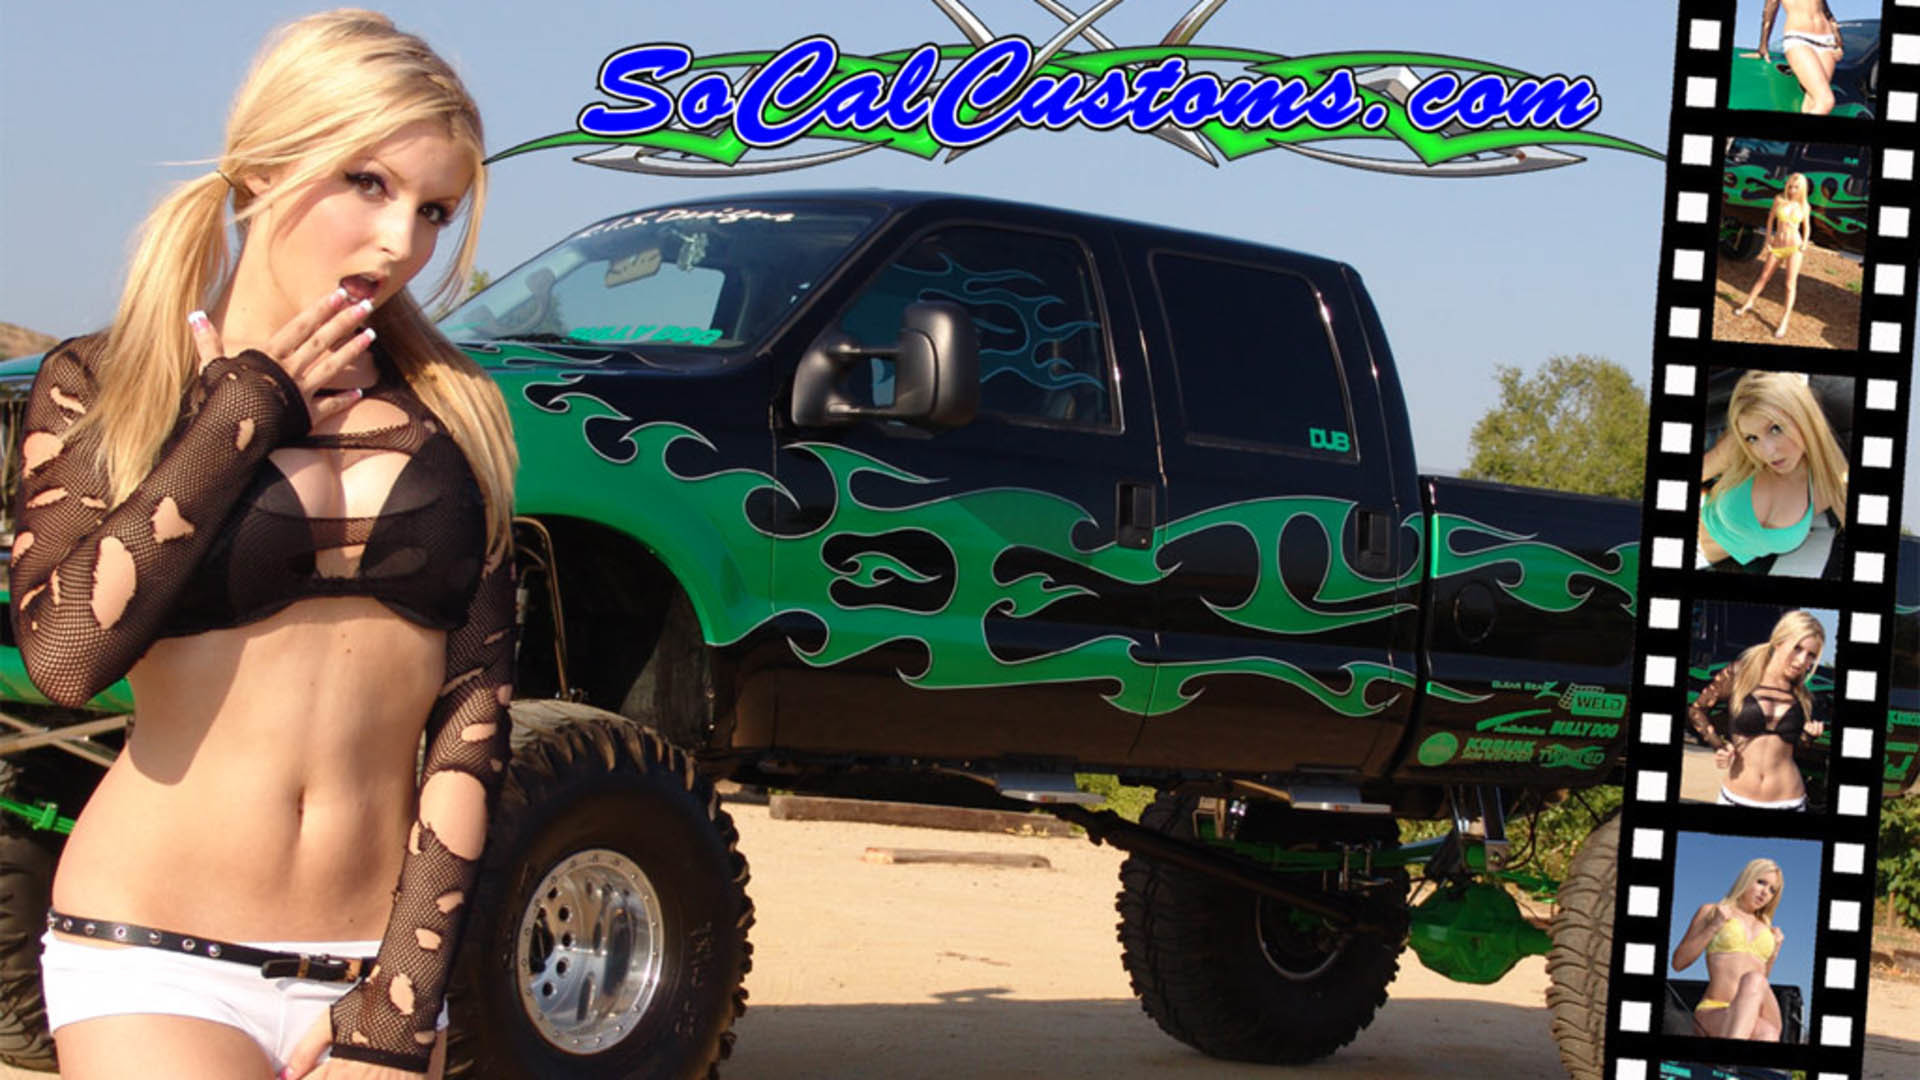 Hottest wallpaper collection of cars with Babes. – Original Preview .